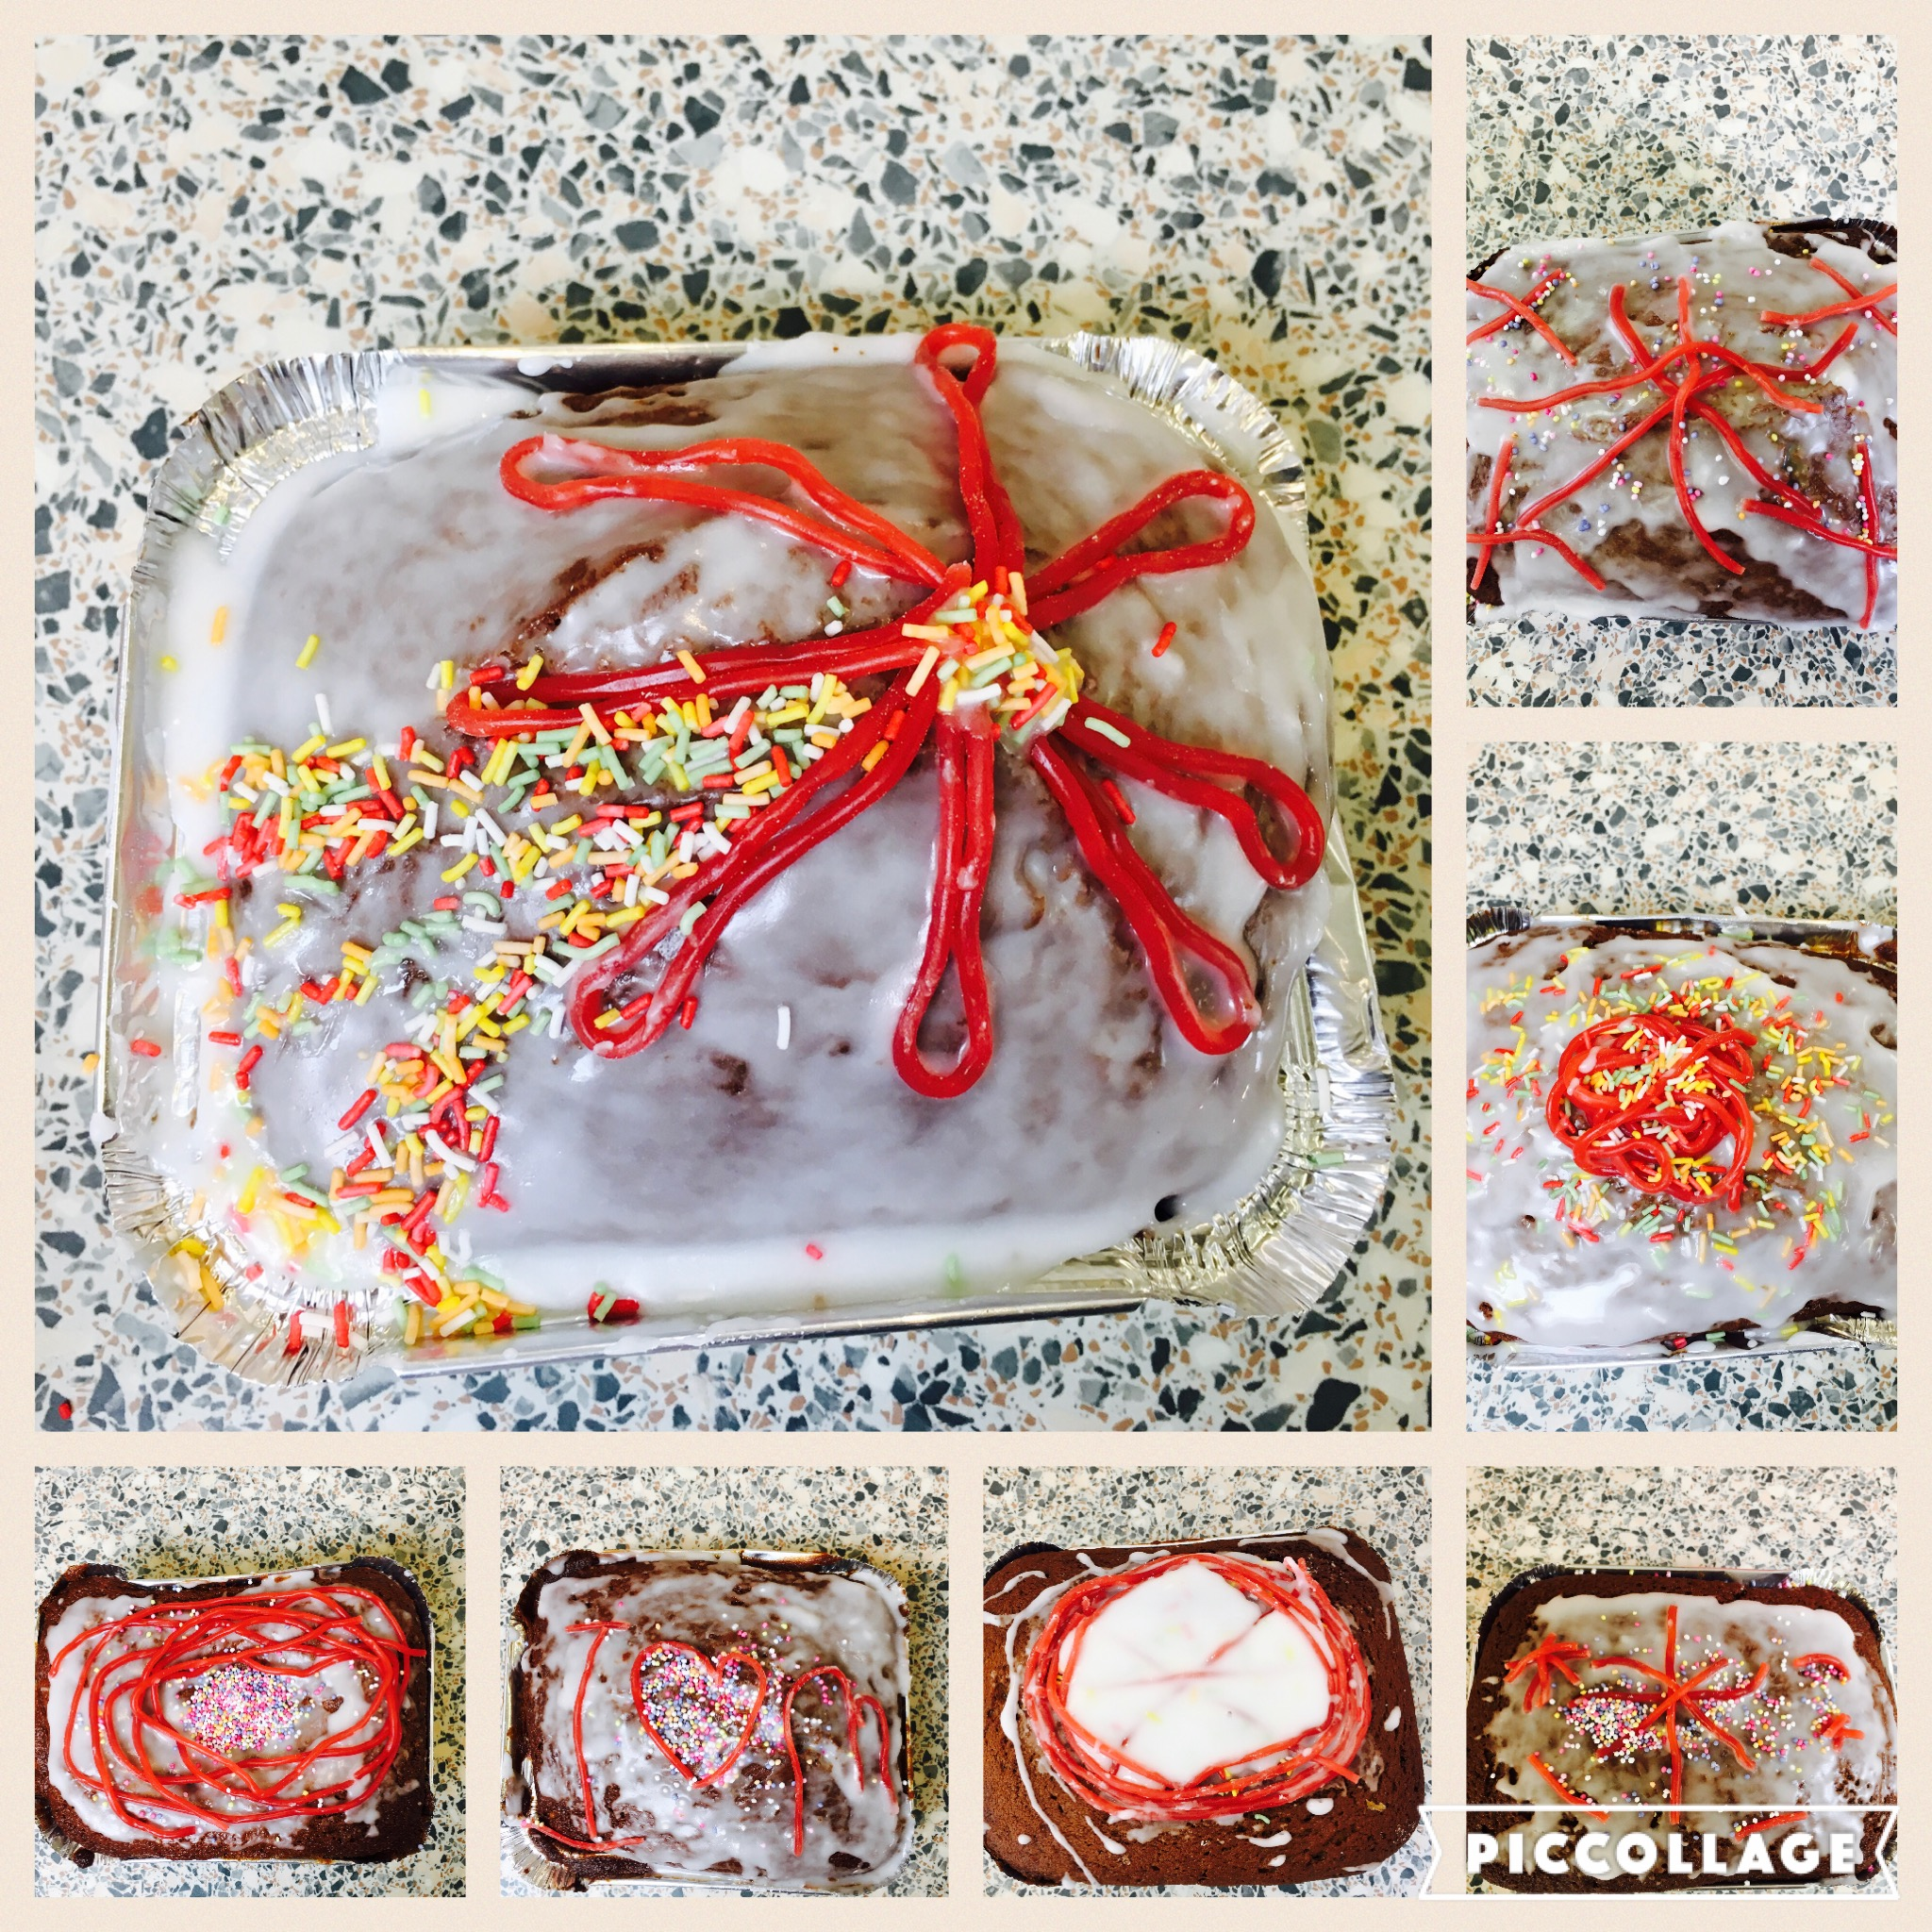 Our individually decorated Whizzbang Firework Traybakes!